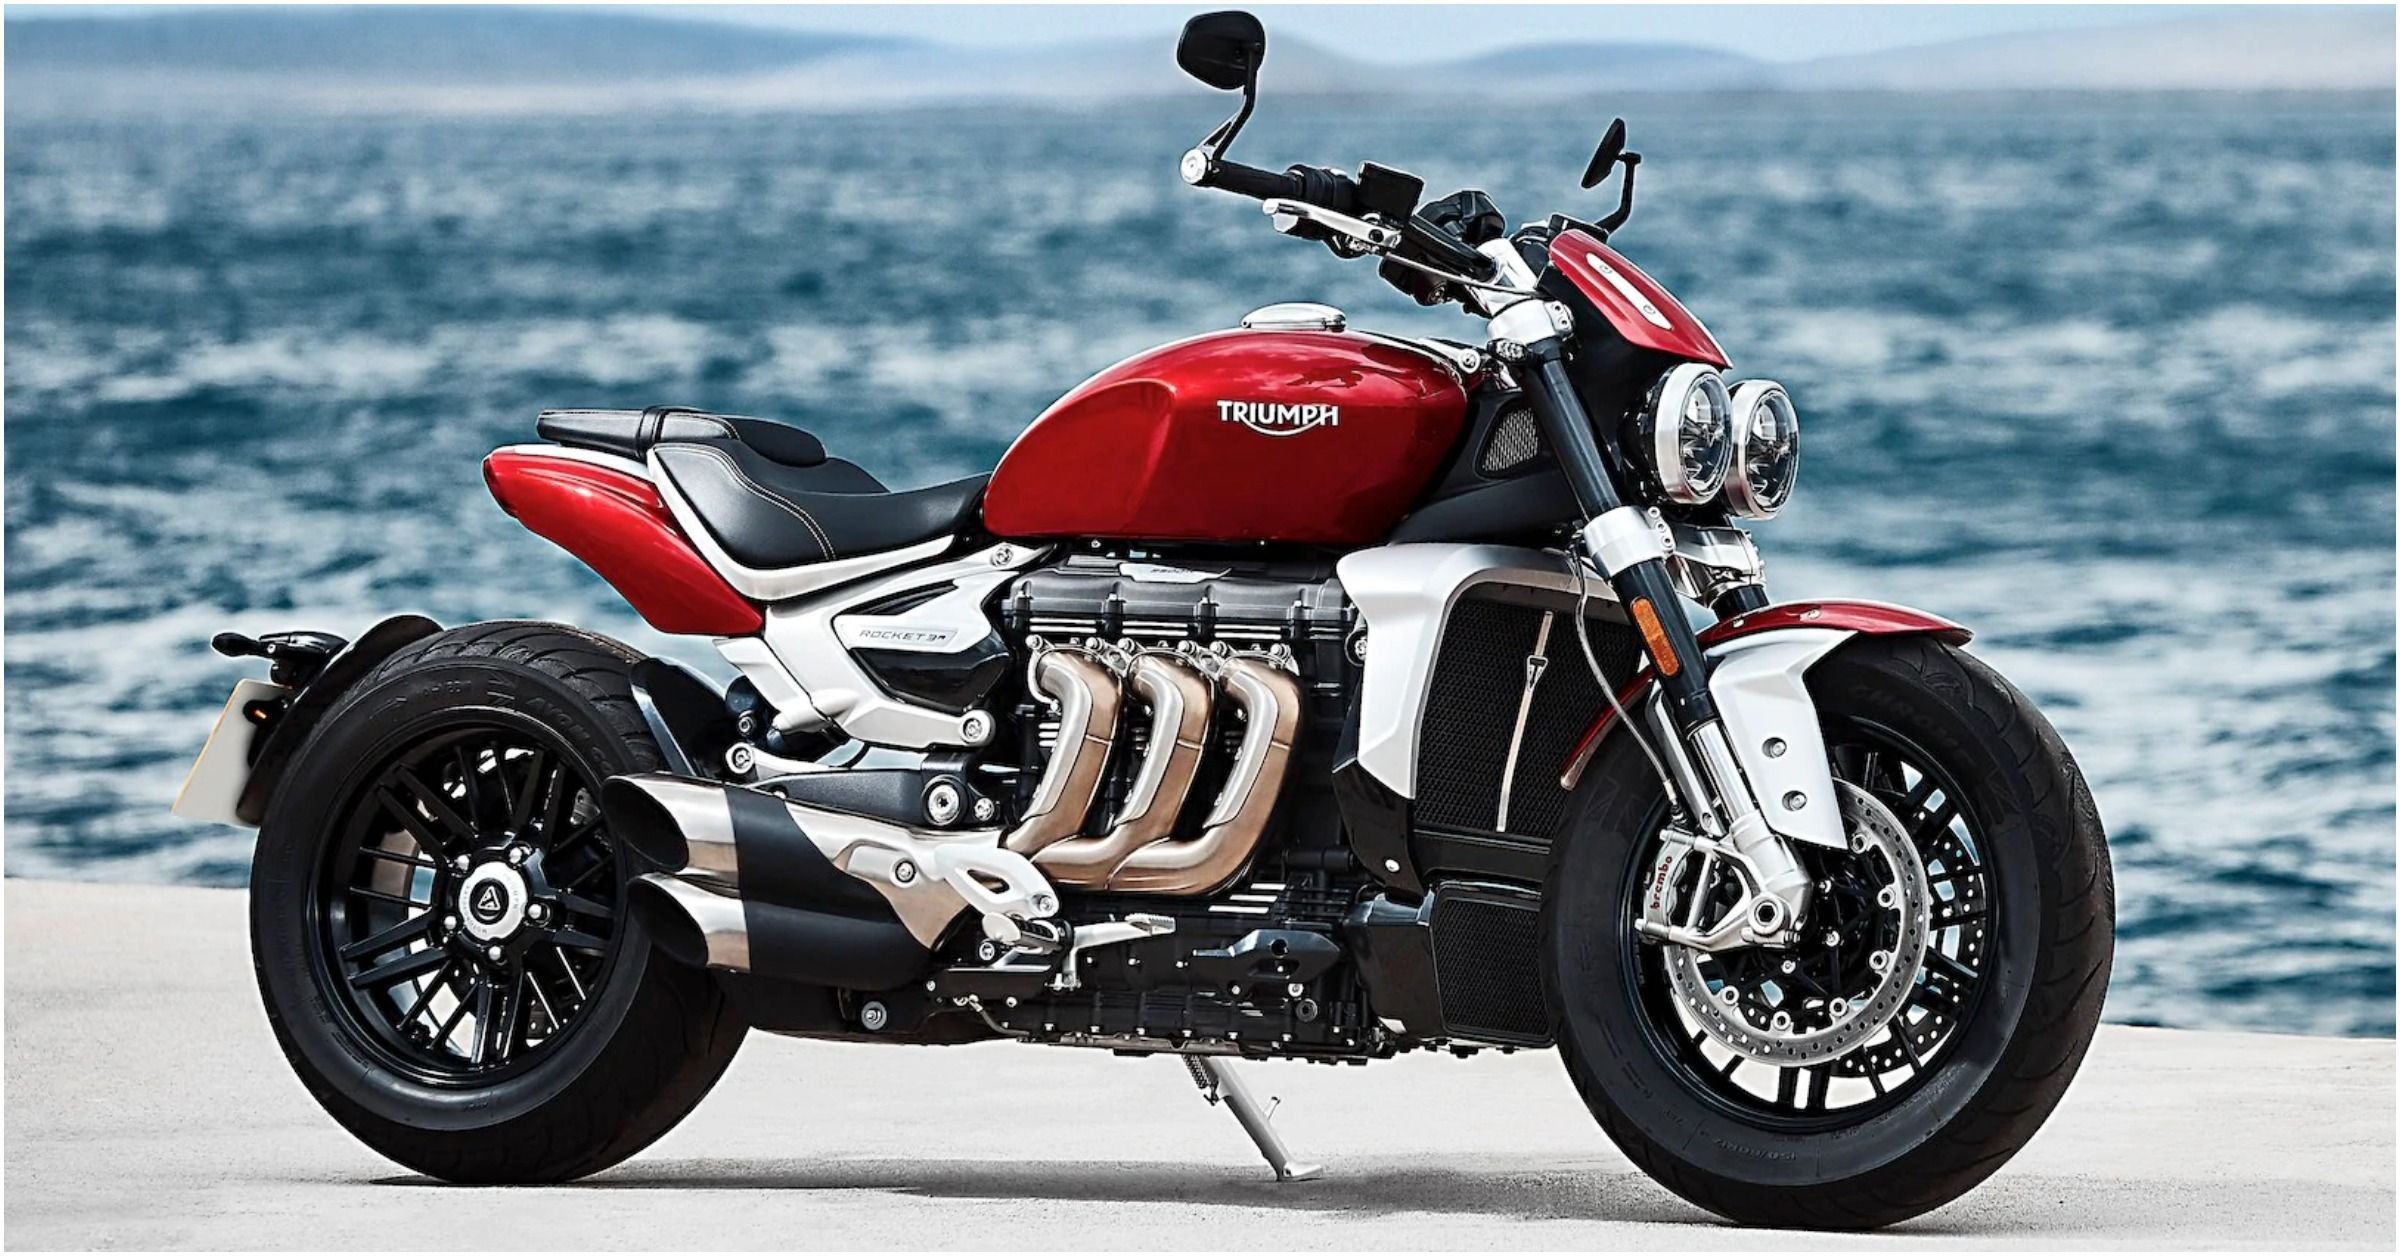 Norton Motorcycles enters administration, looks for new owner